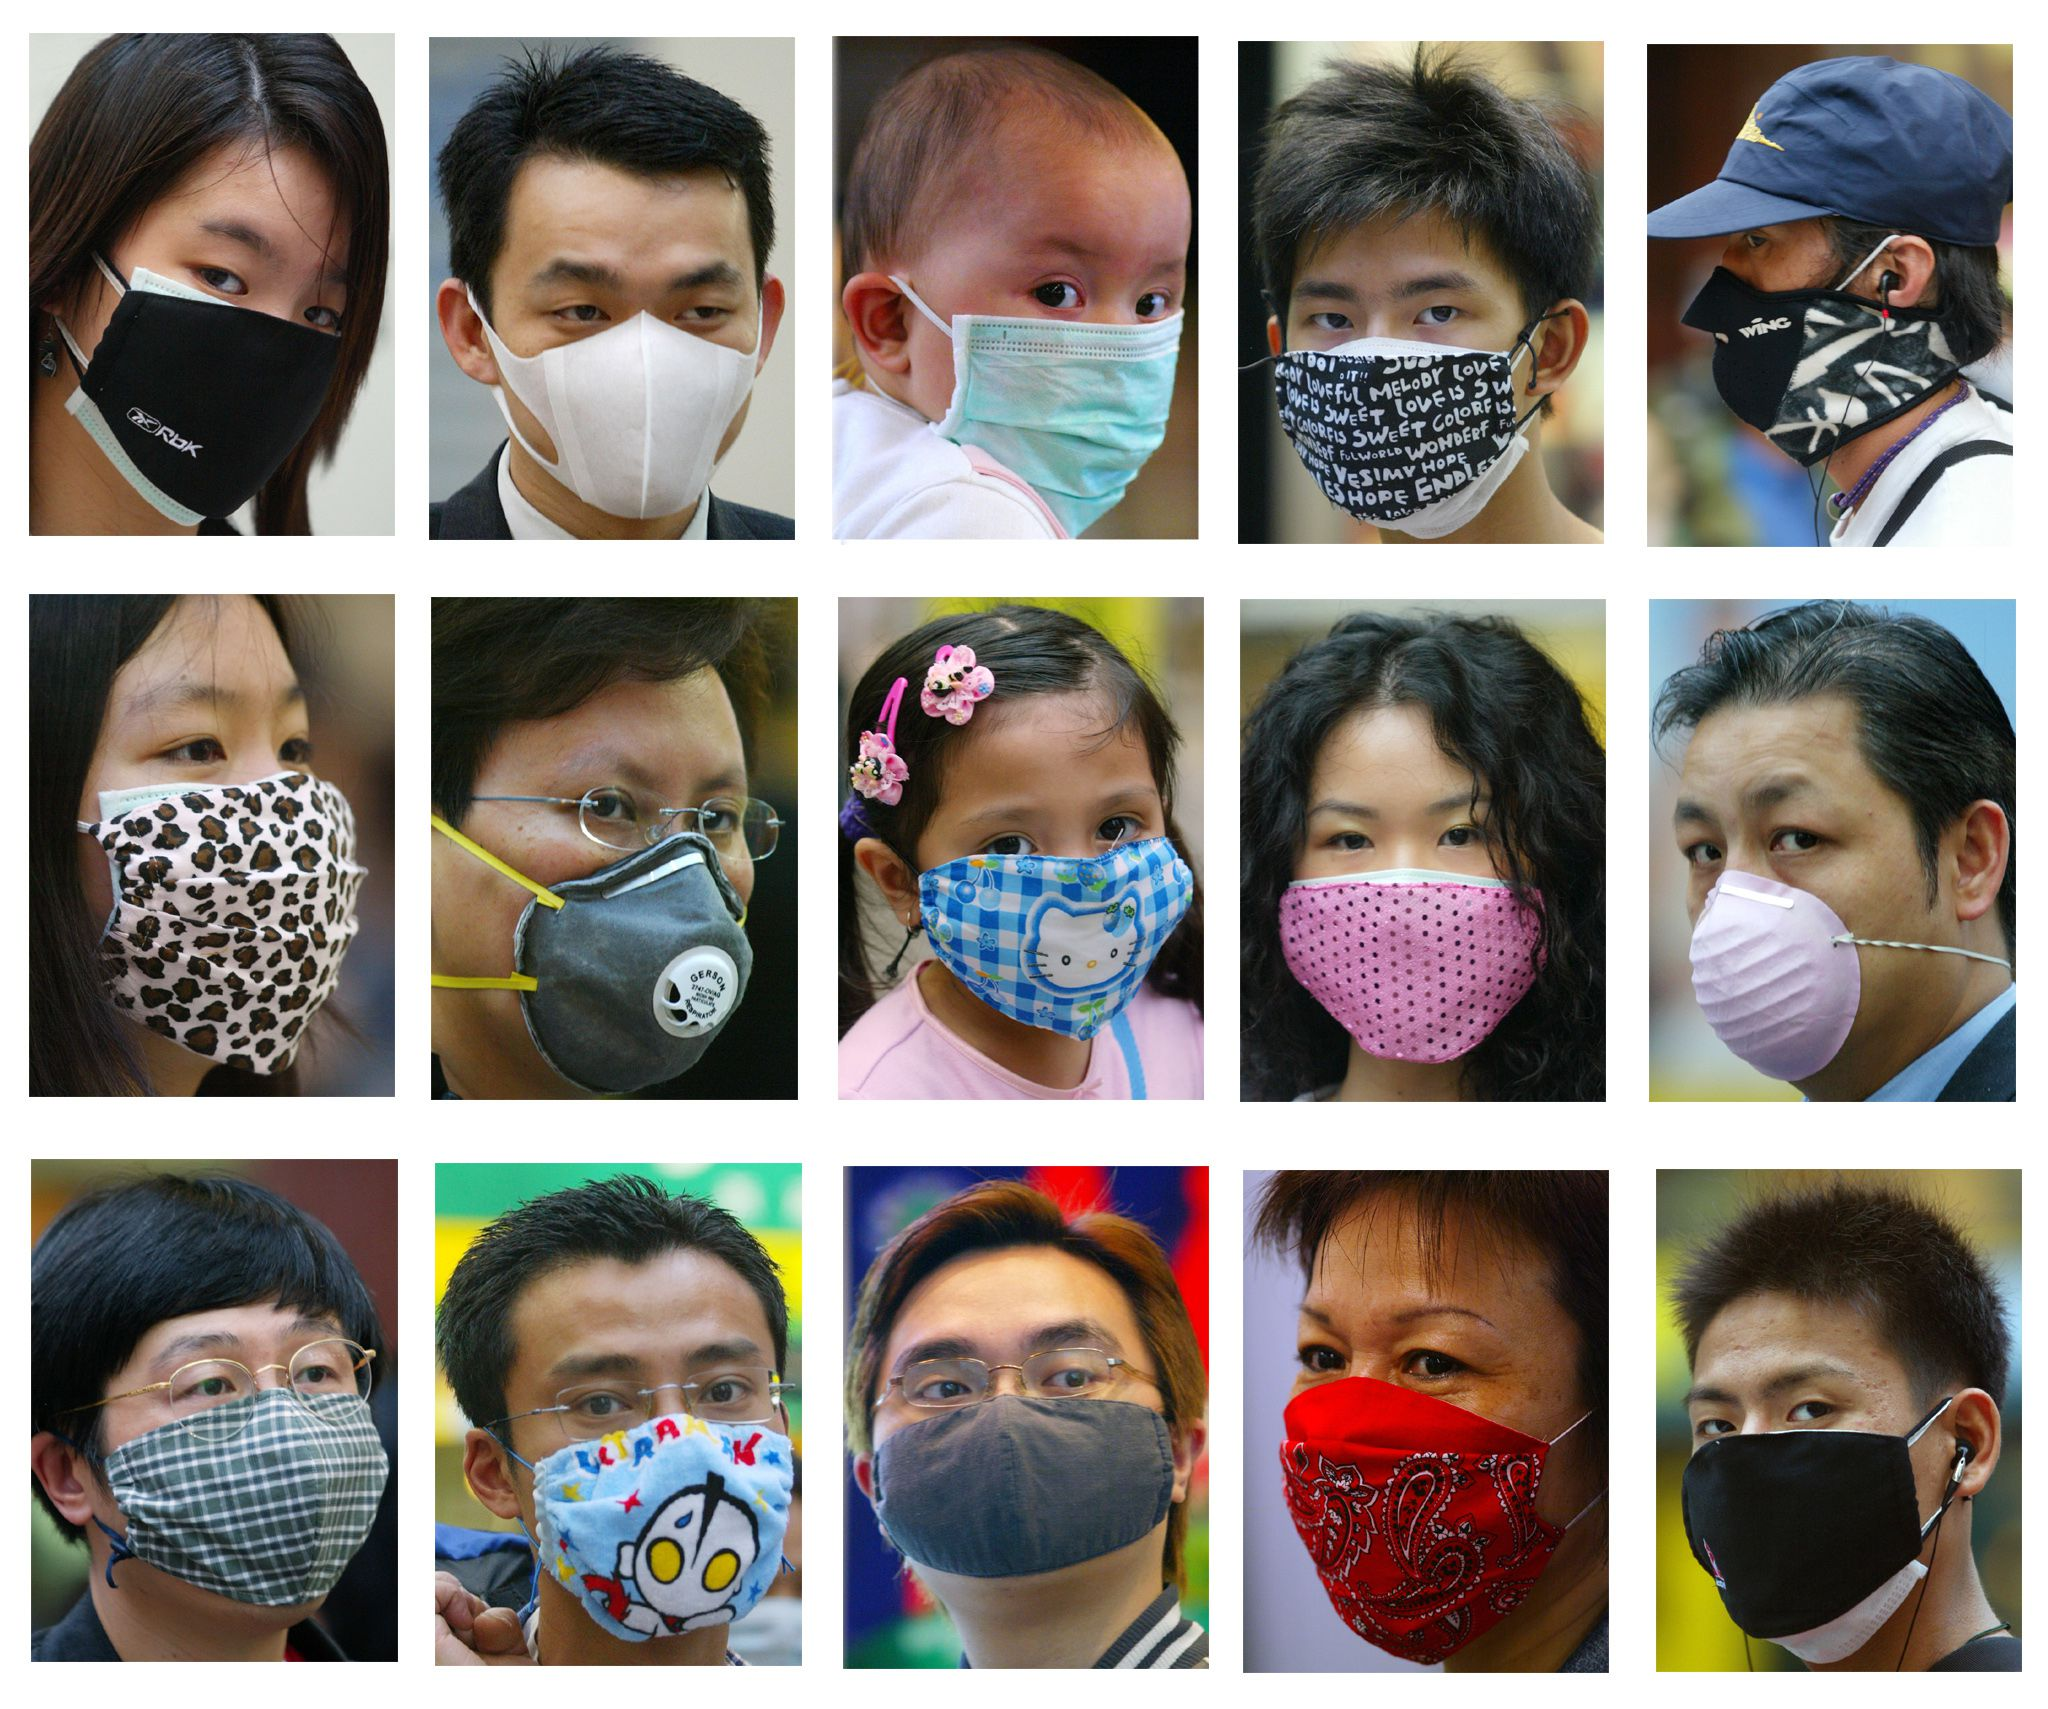 sars surgical mask